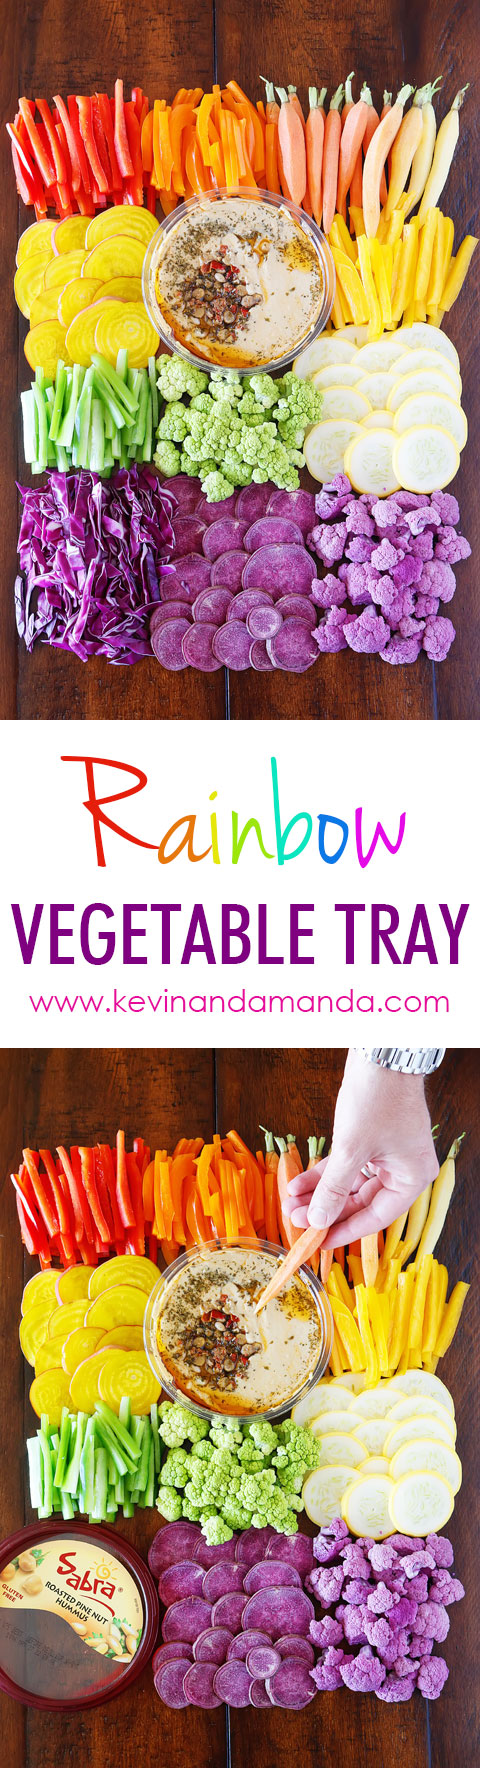 Quick and Easy Rainbow Vegetable Tray! So fun and a GREAT healthy alternative for snacking!